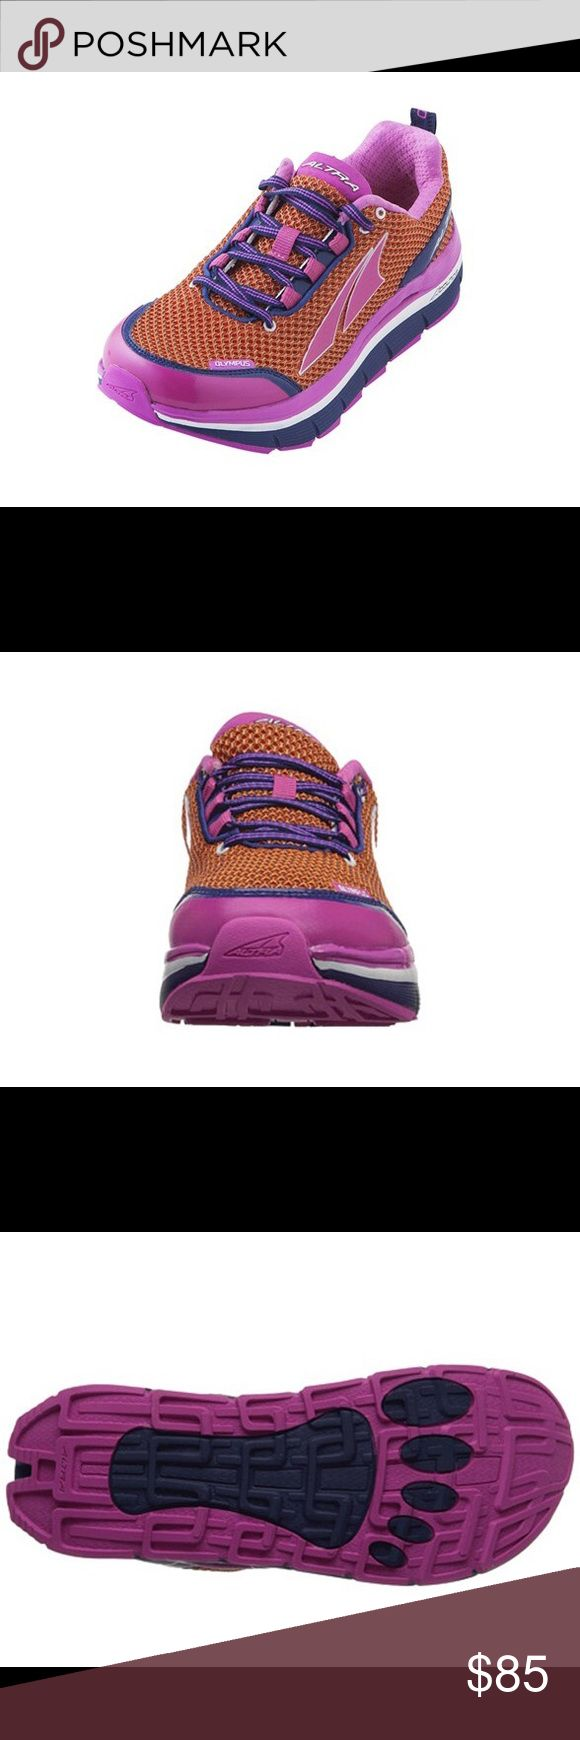 Altra Women's Olympus size 6 Ideal for trail and road running, hiking, fastpacking, and ultramarathons. Designed to reduce ankle sprains, stone bruising, overstriding, knee pain, forefoot pain, impact, and fatigue. Quick-drying, breathable mesh upper and synthetic overlays. Foot-shaped toe box allows natural foot flex and toe splaying. 5 mm Contour insole for light underfoot cushioning. A-Bound™ top midsole layer protects feel from hard surfaces without sacrificing proper altra Shoes…